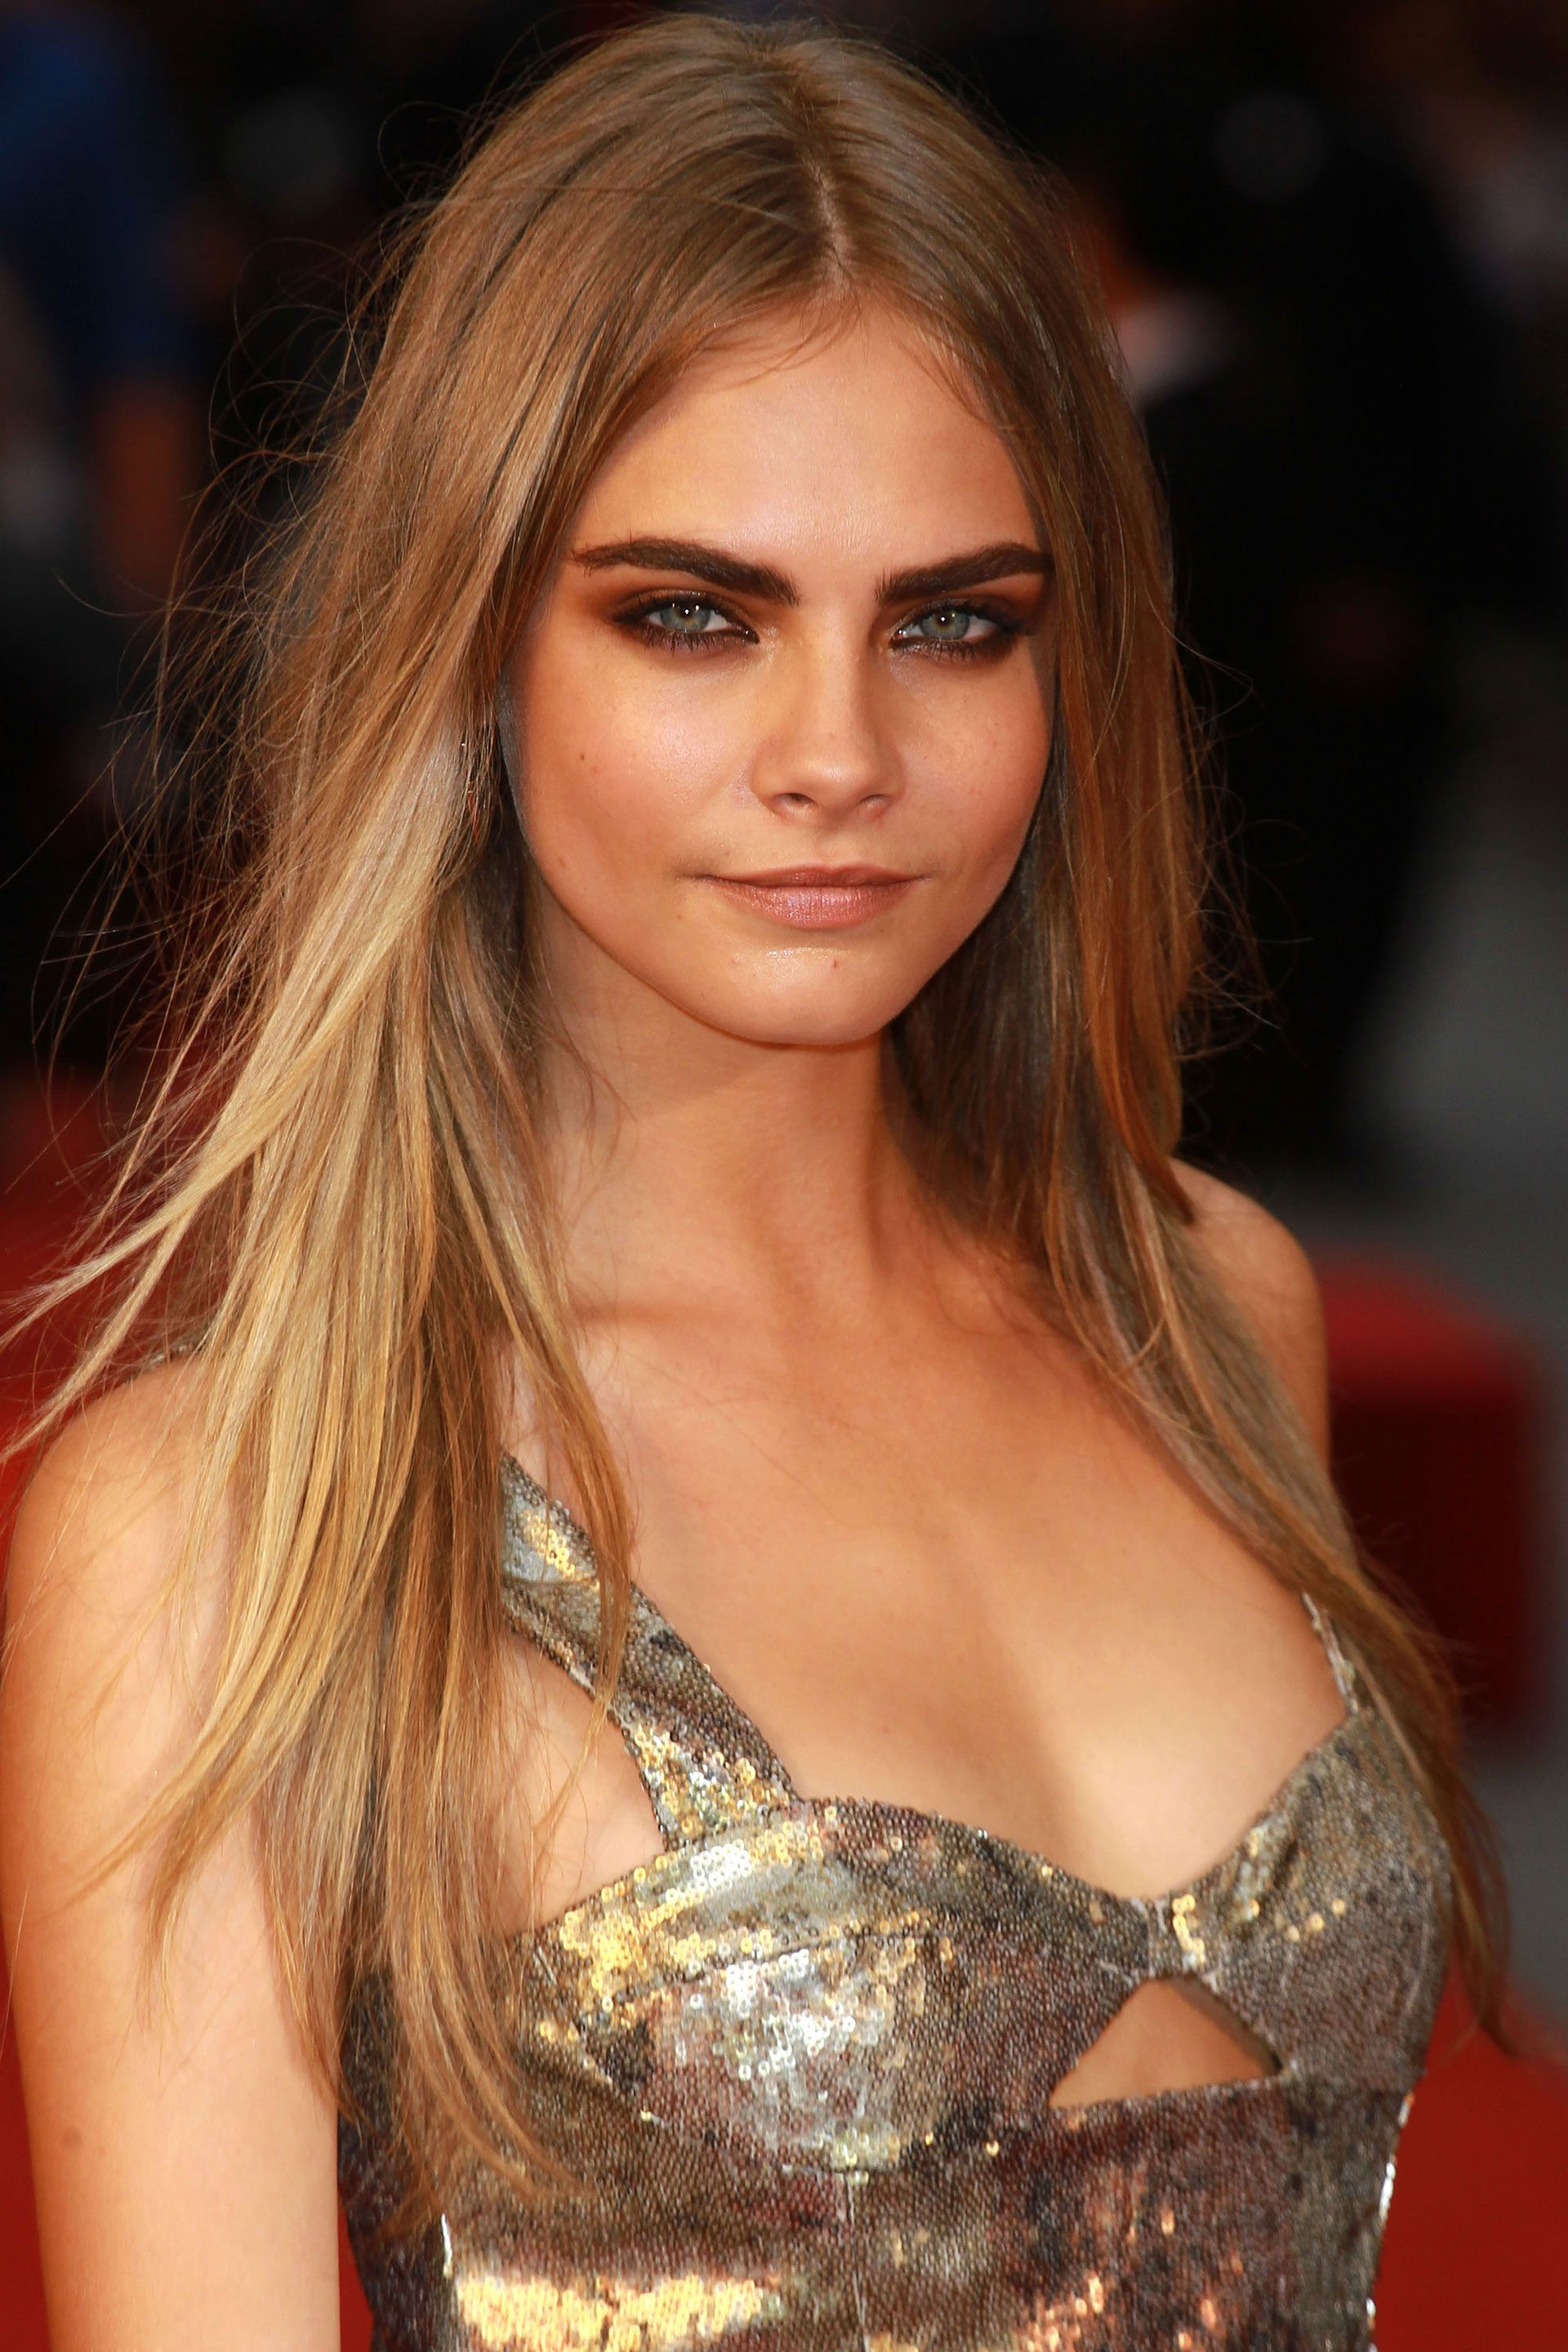 25 Stunning Photos Of Cara Delevingne Cara Delevingne Photos